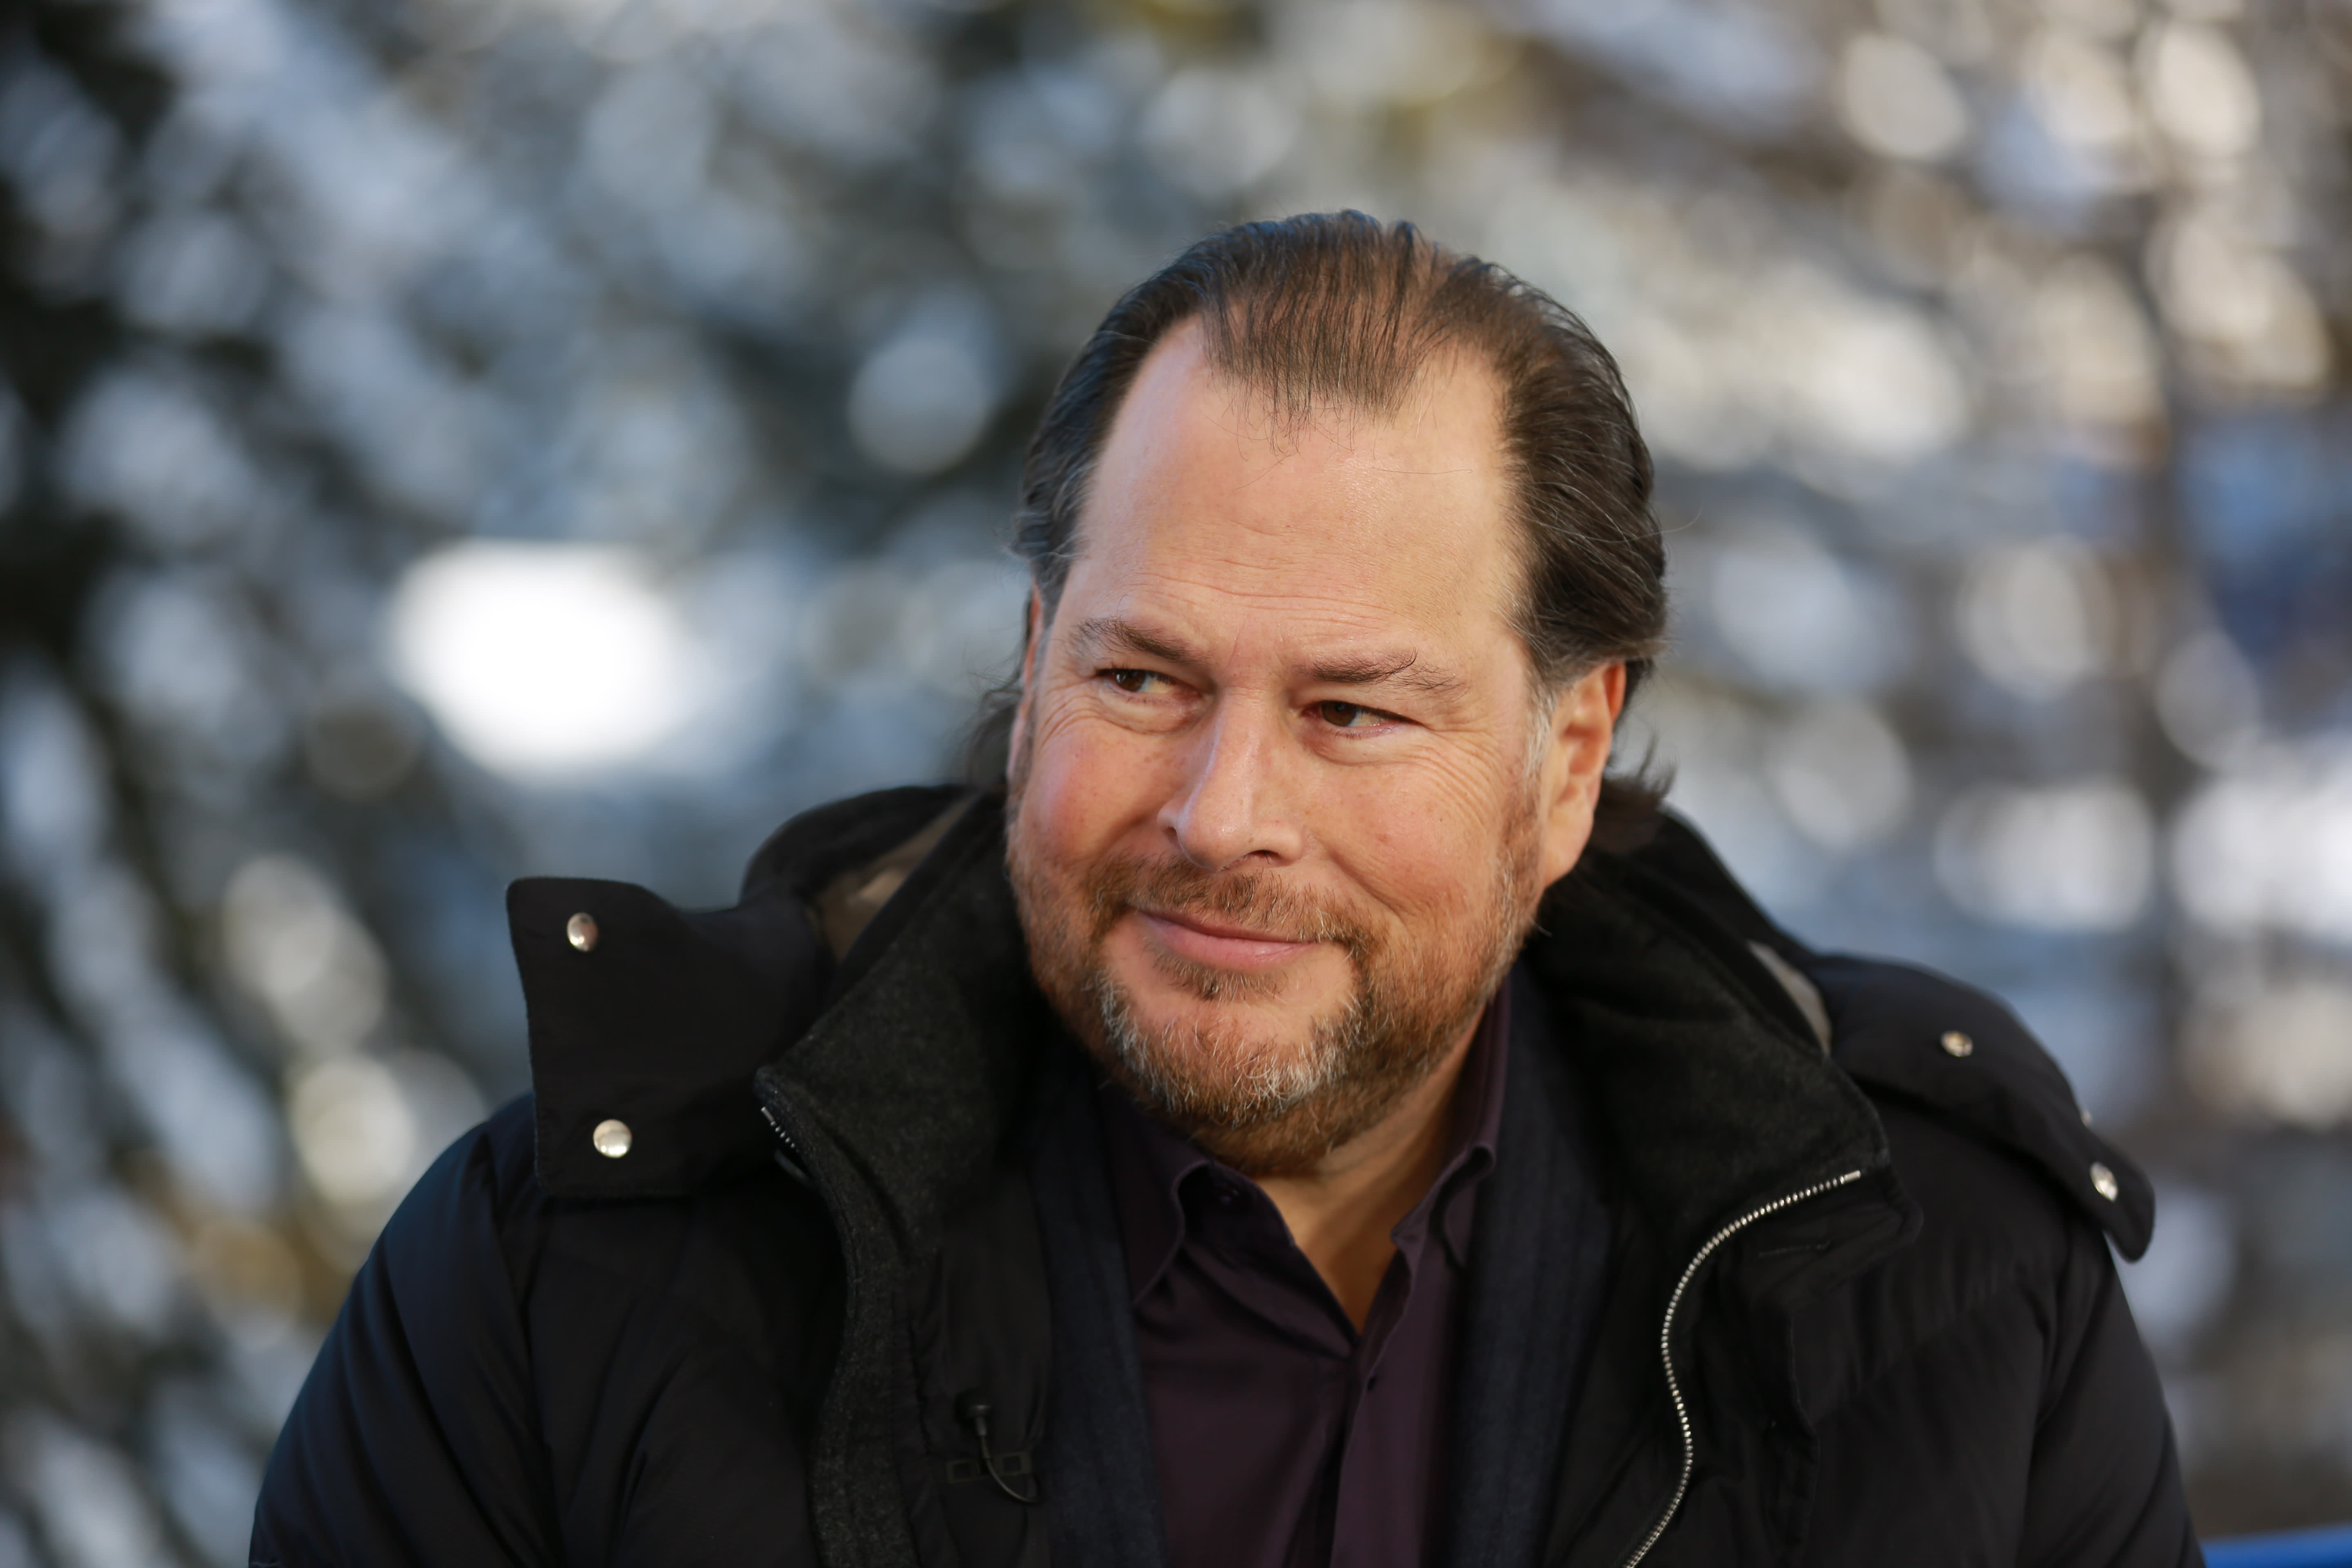 Billionaire Salesforce co-founder Marc Benioff says capitalism is dead and needs a reboot